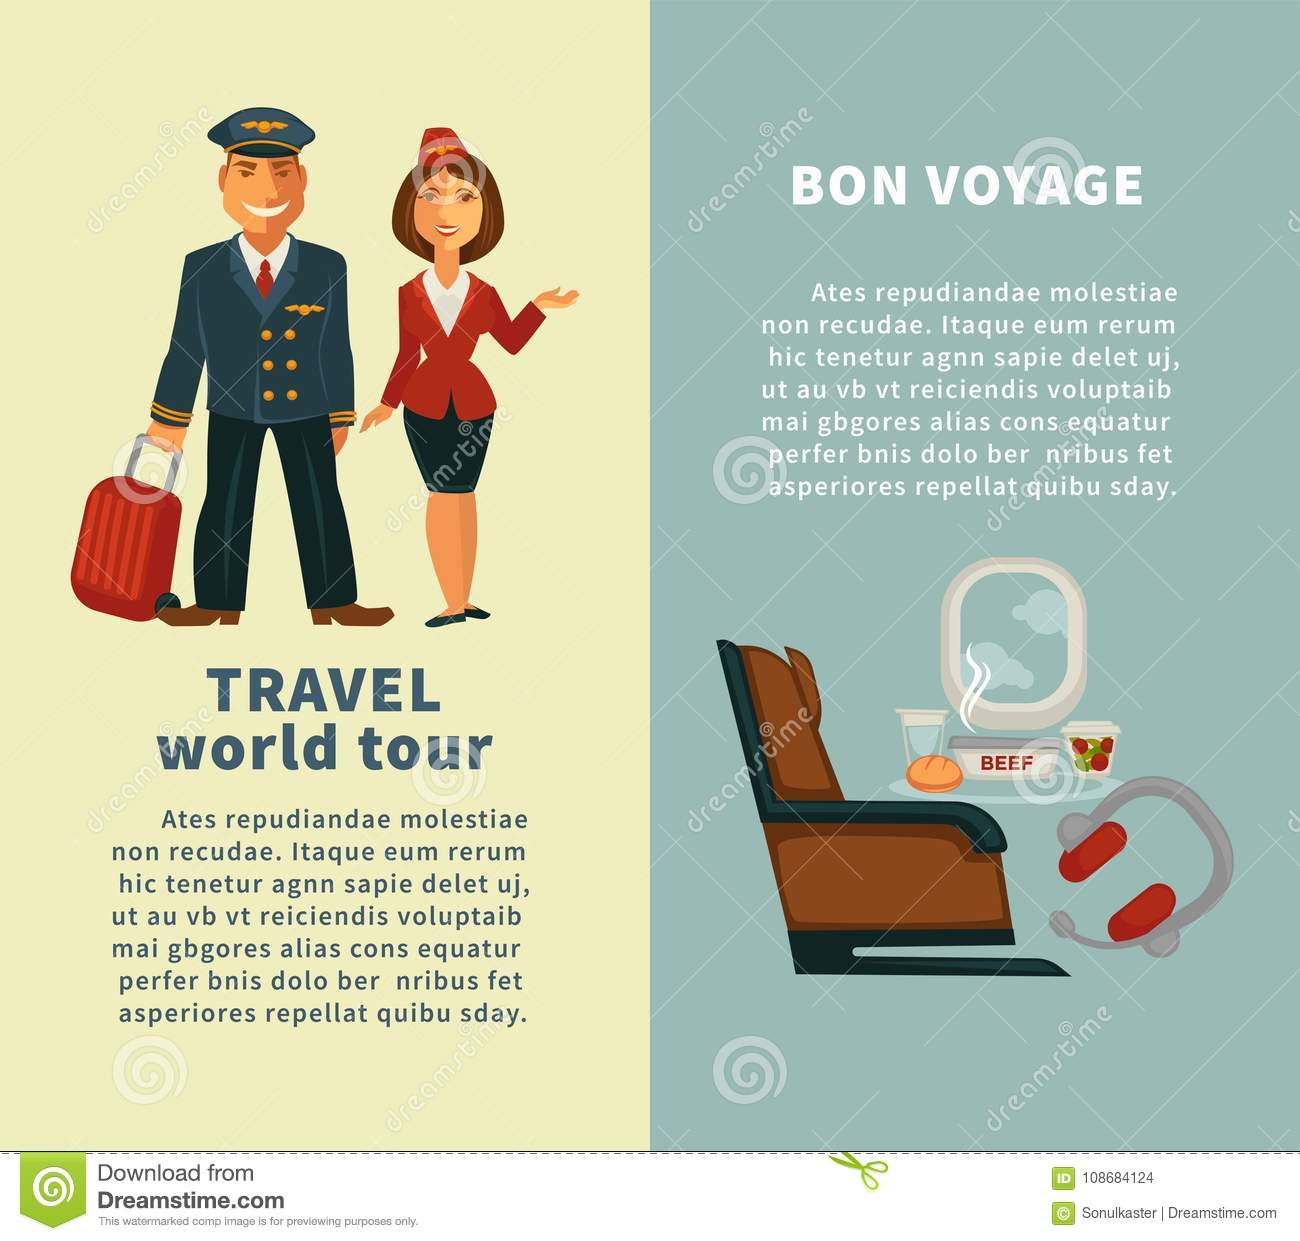 travel world tour and bon voyage vertical posters stock vector